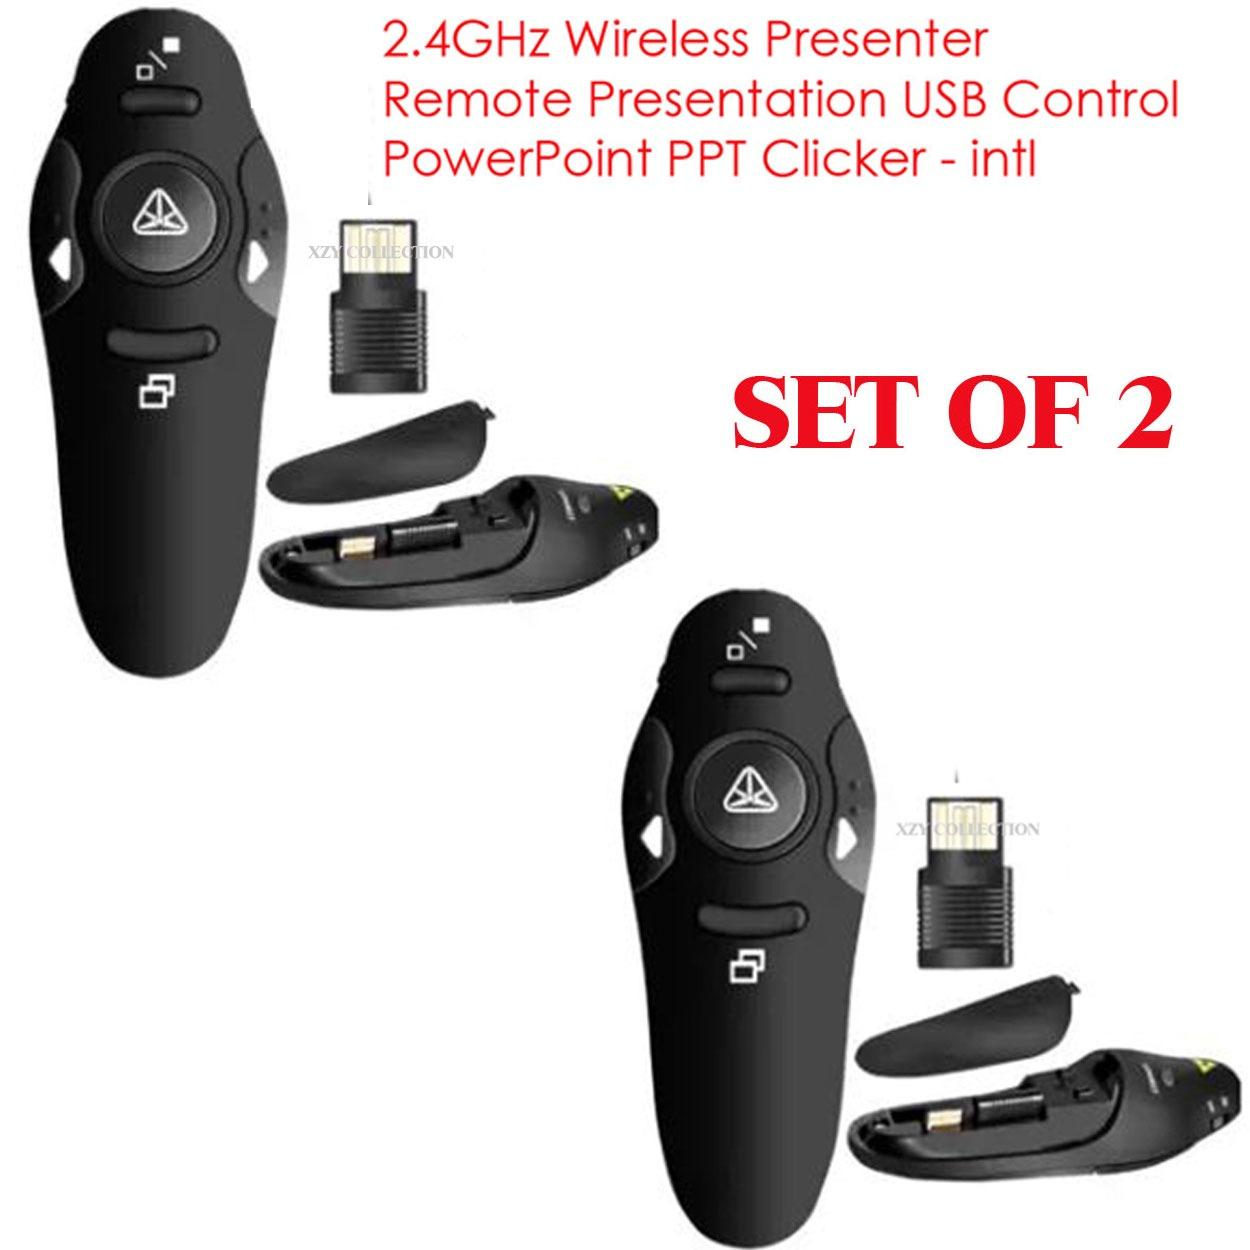 Laser For Sale Pointer Prices Brands Specs In Philippines Presenter Wireless Logitech R800 Ppt Set Of 2 Rf 24ghz Remote Clicker Presentation Usb Control